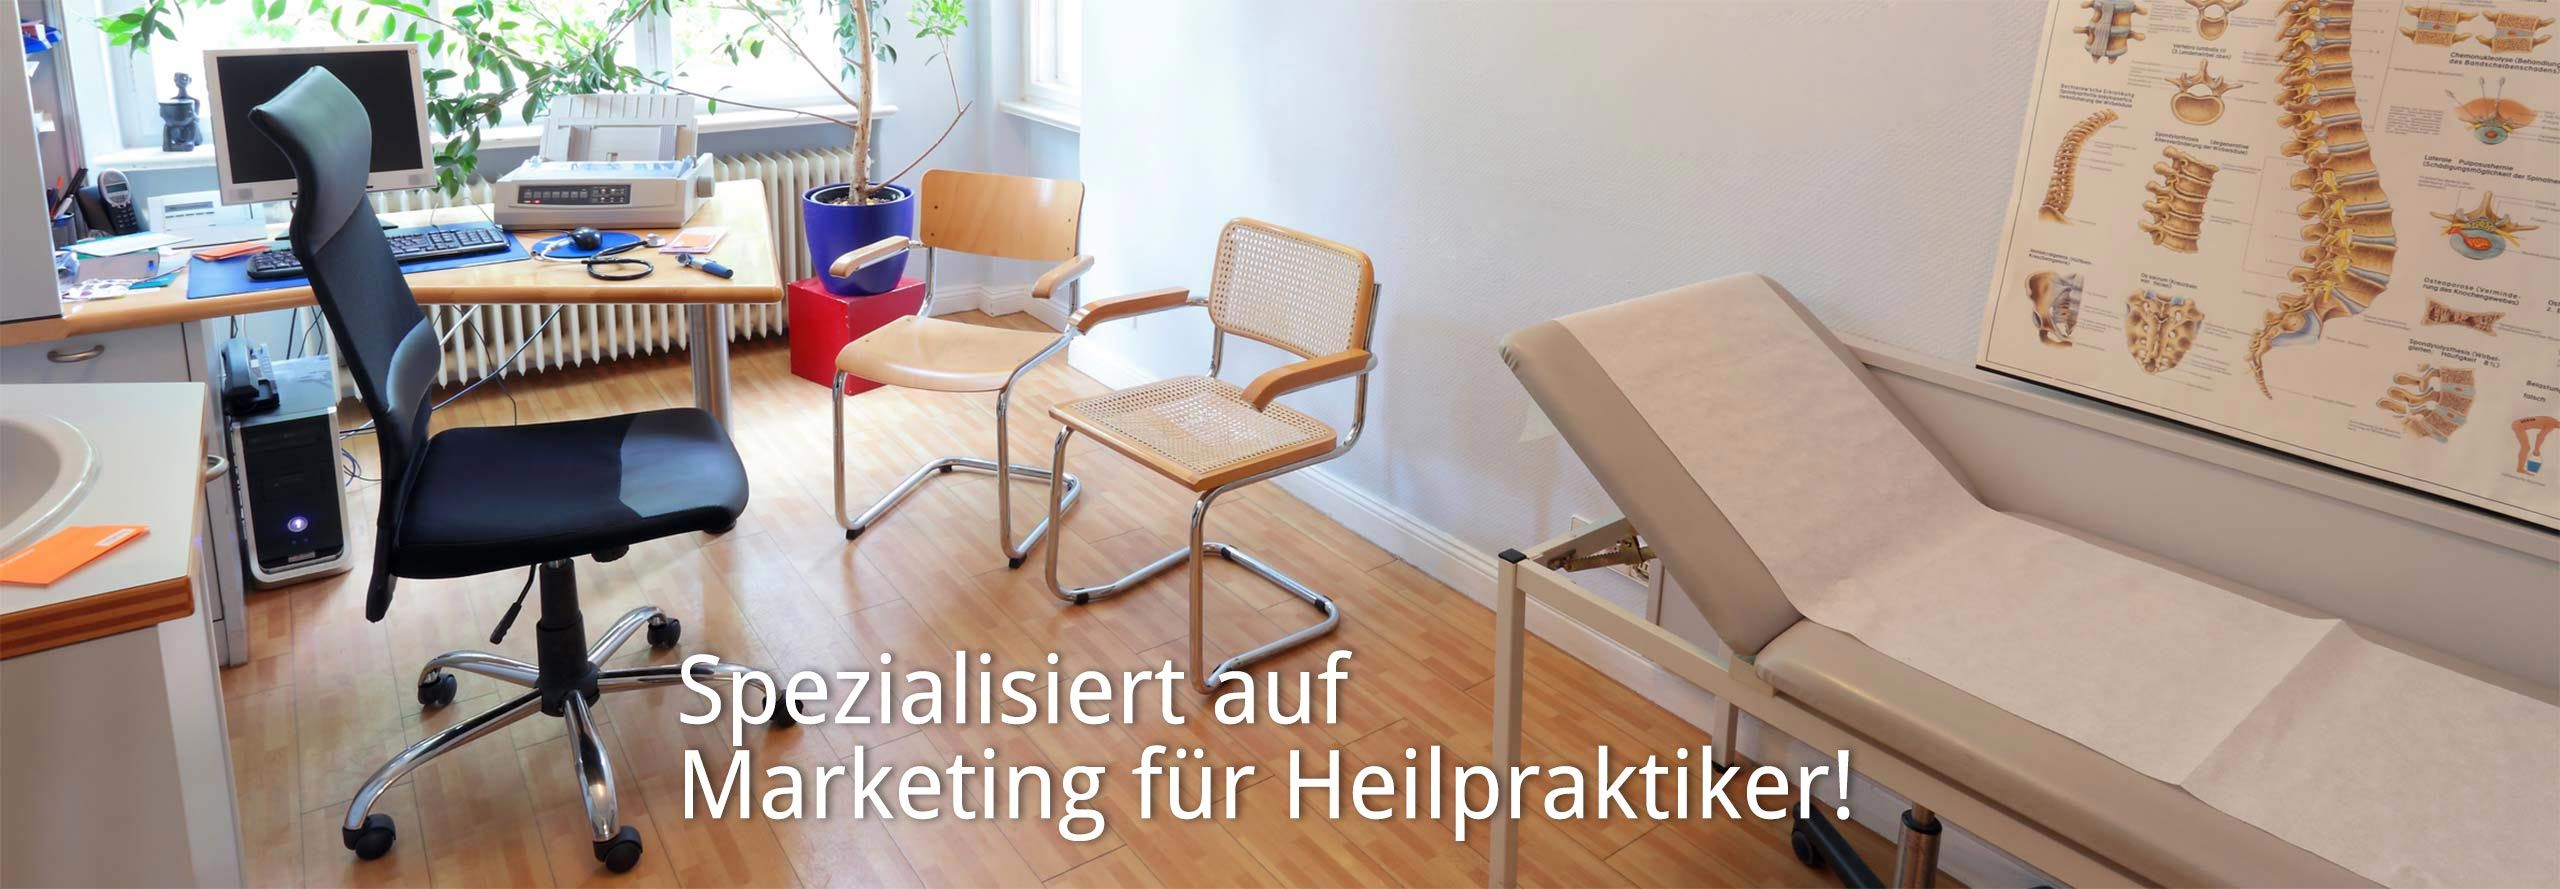 Marketing für Heilpraktiker